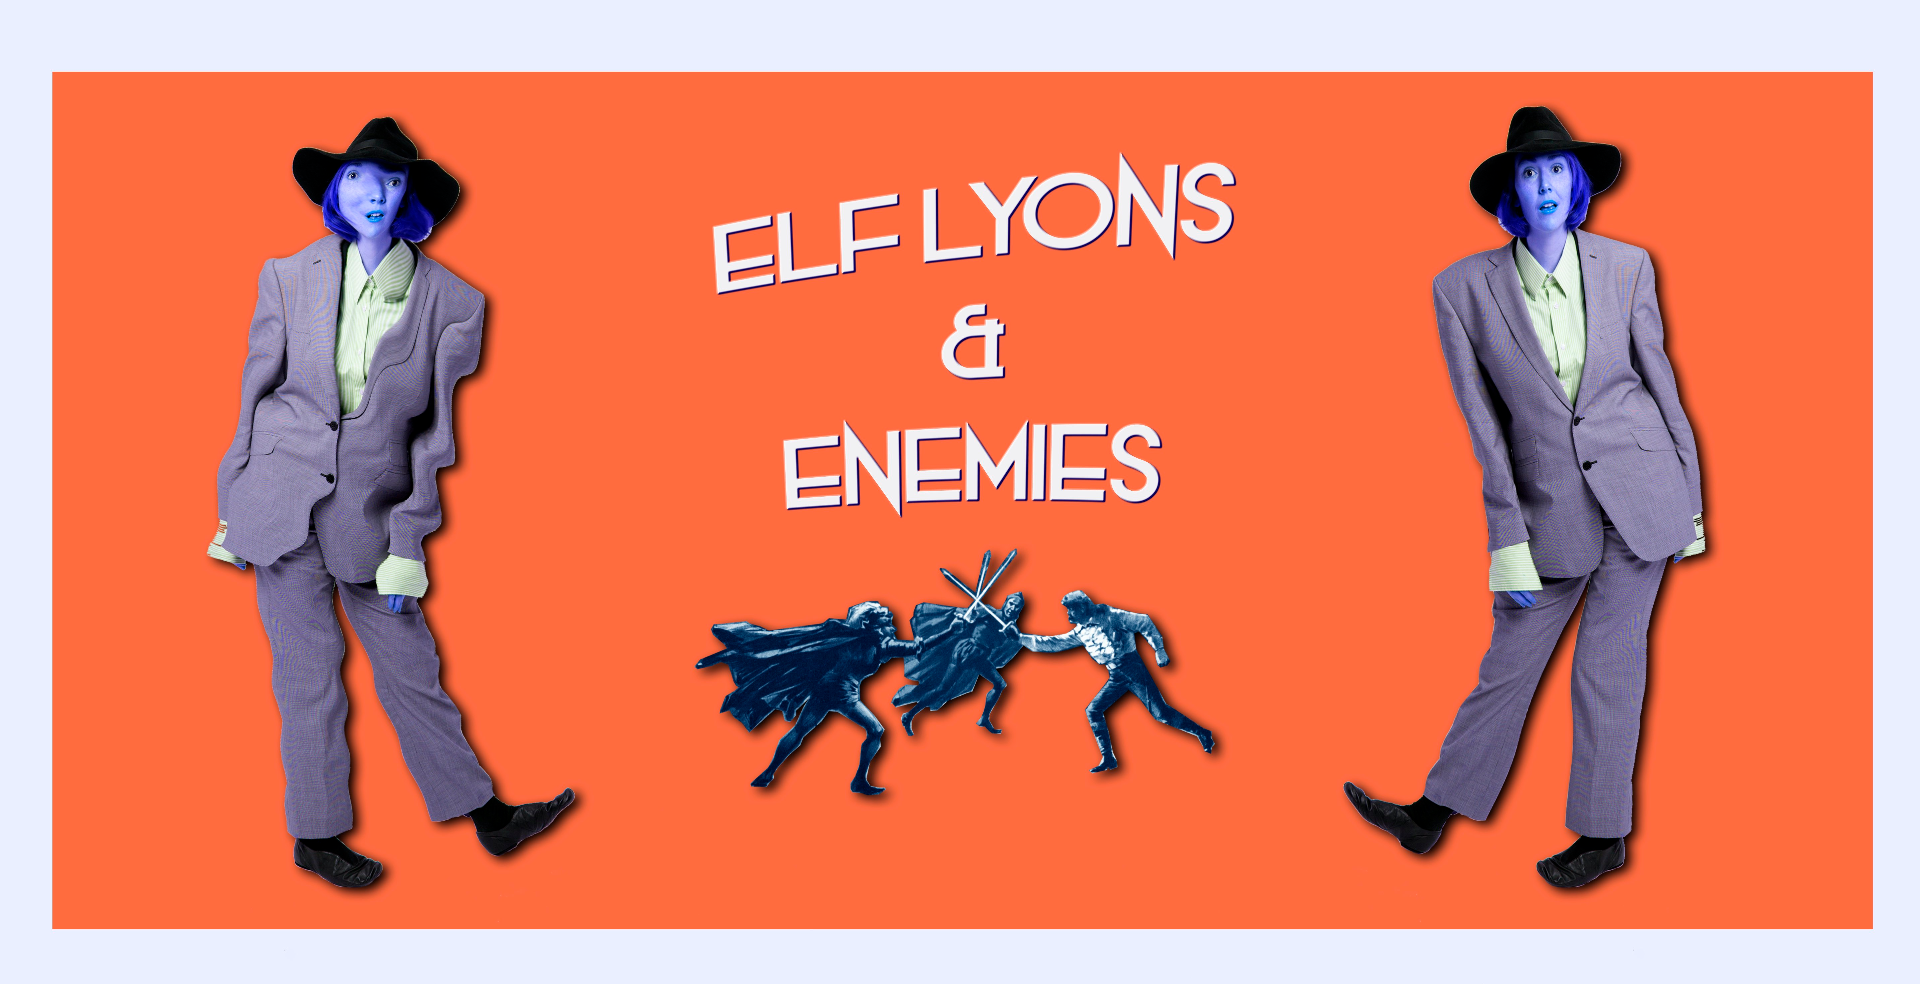 Elf Lyons & Enemies